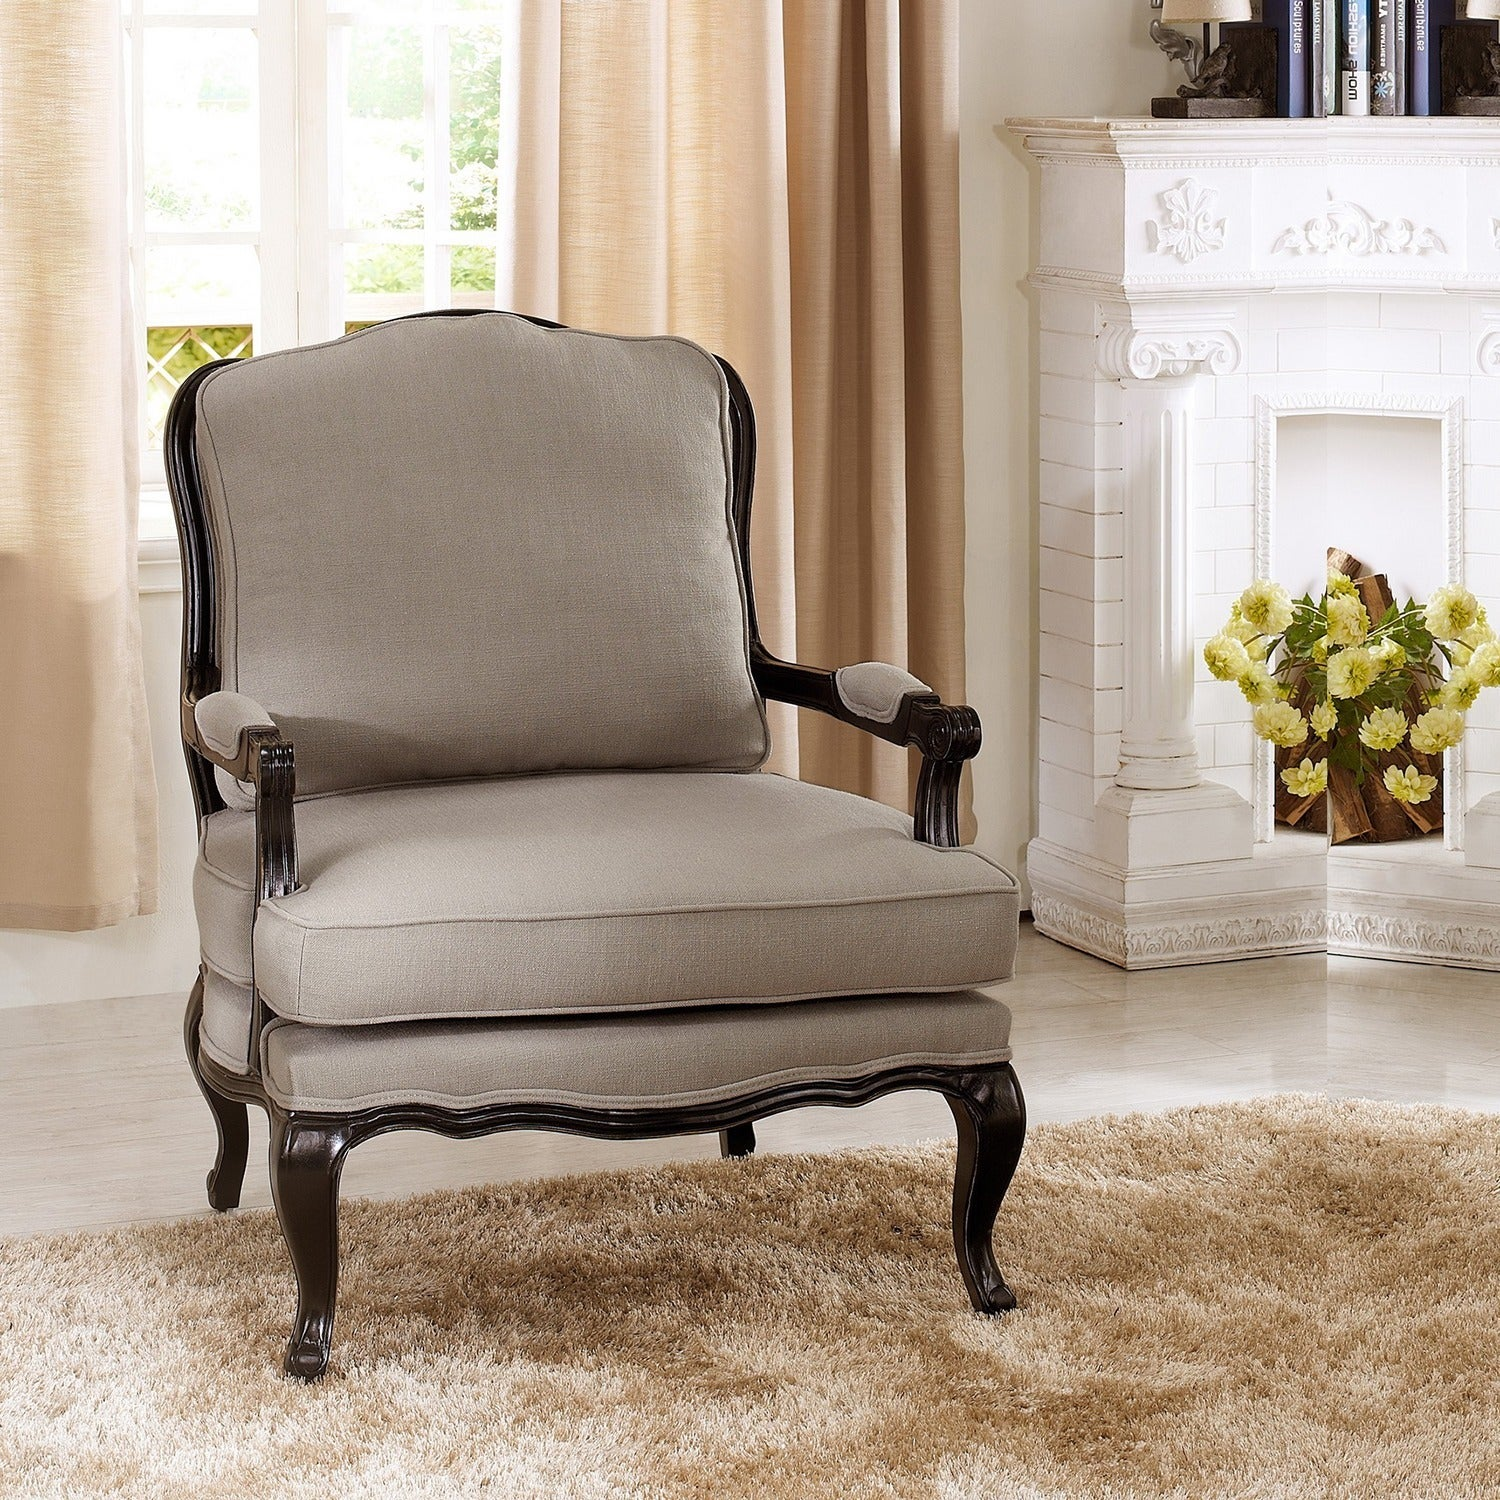 Baxton Studio Antoinette Clic Antiqued French Accent Chairs Set Of 2